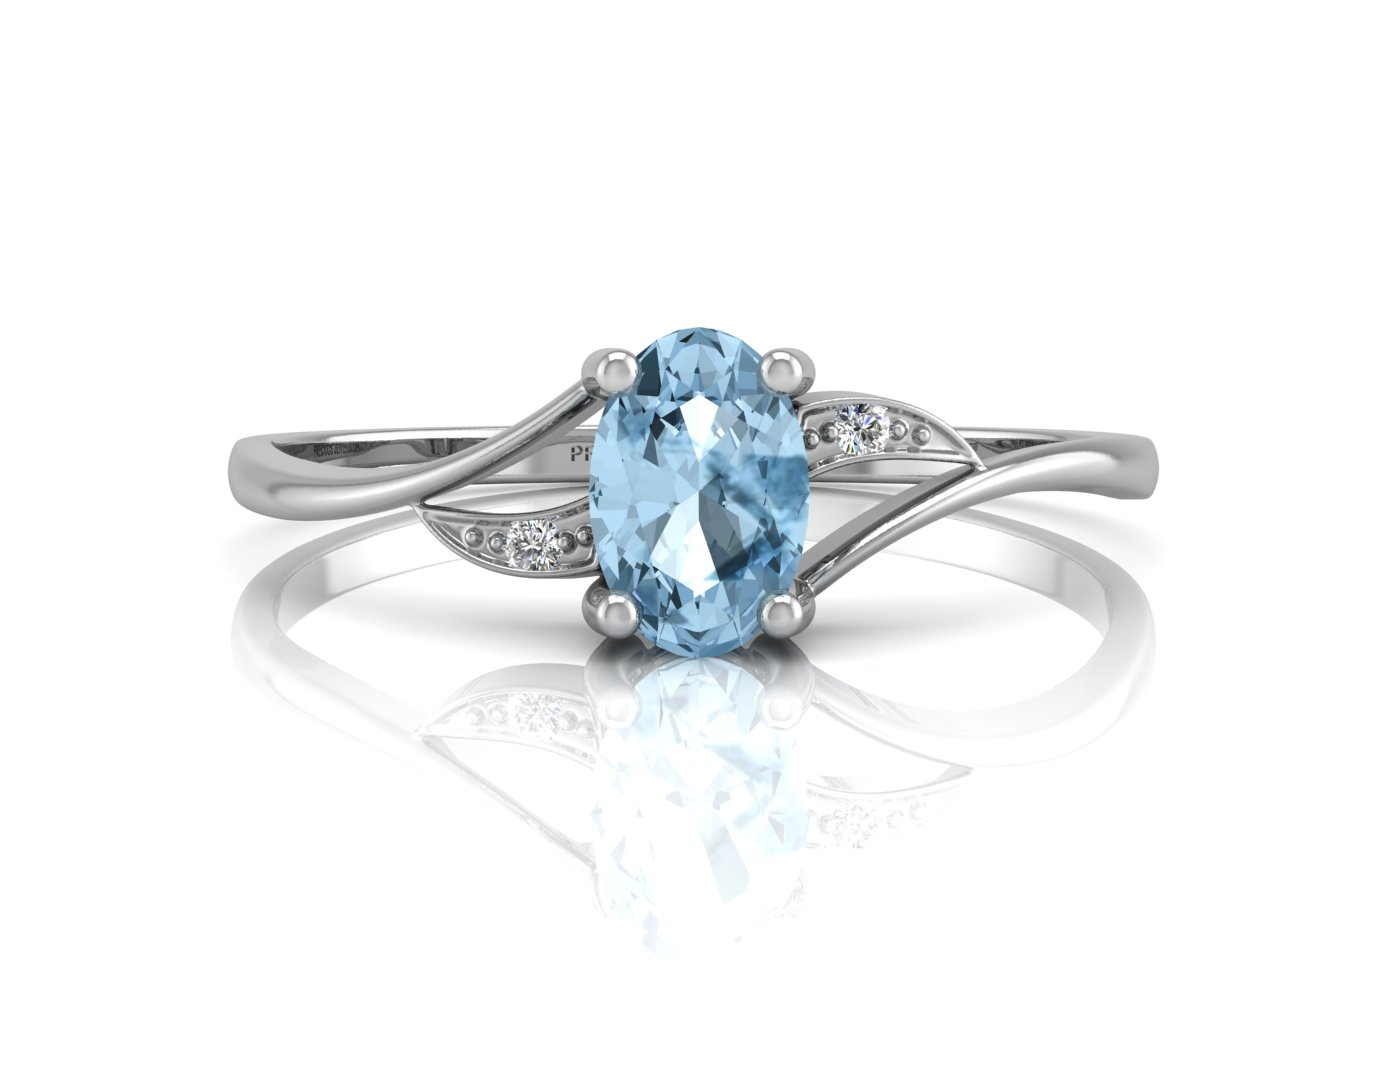 9ct White Gold Diamond And Blue Topaz Ring - Image 4 of 4